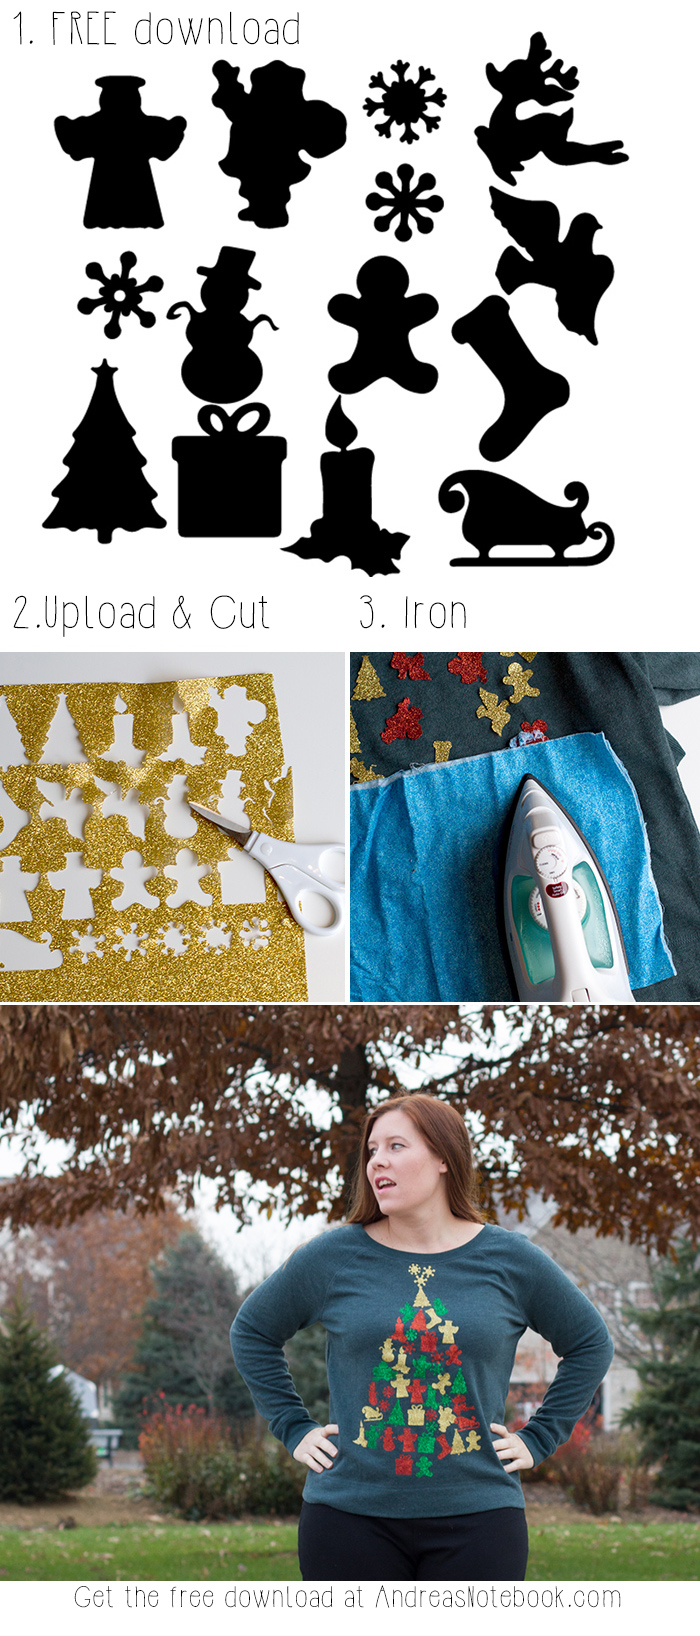 How to make a Christmas sweater - FREE download